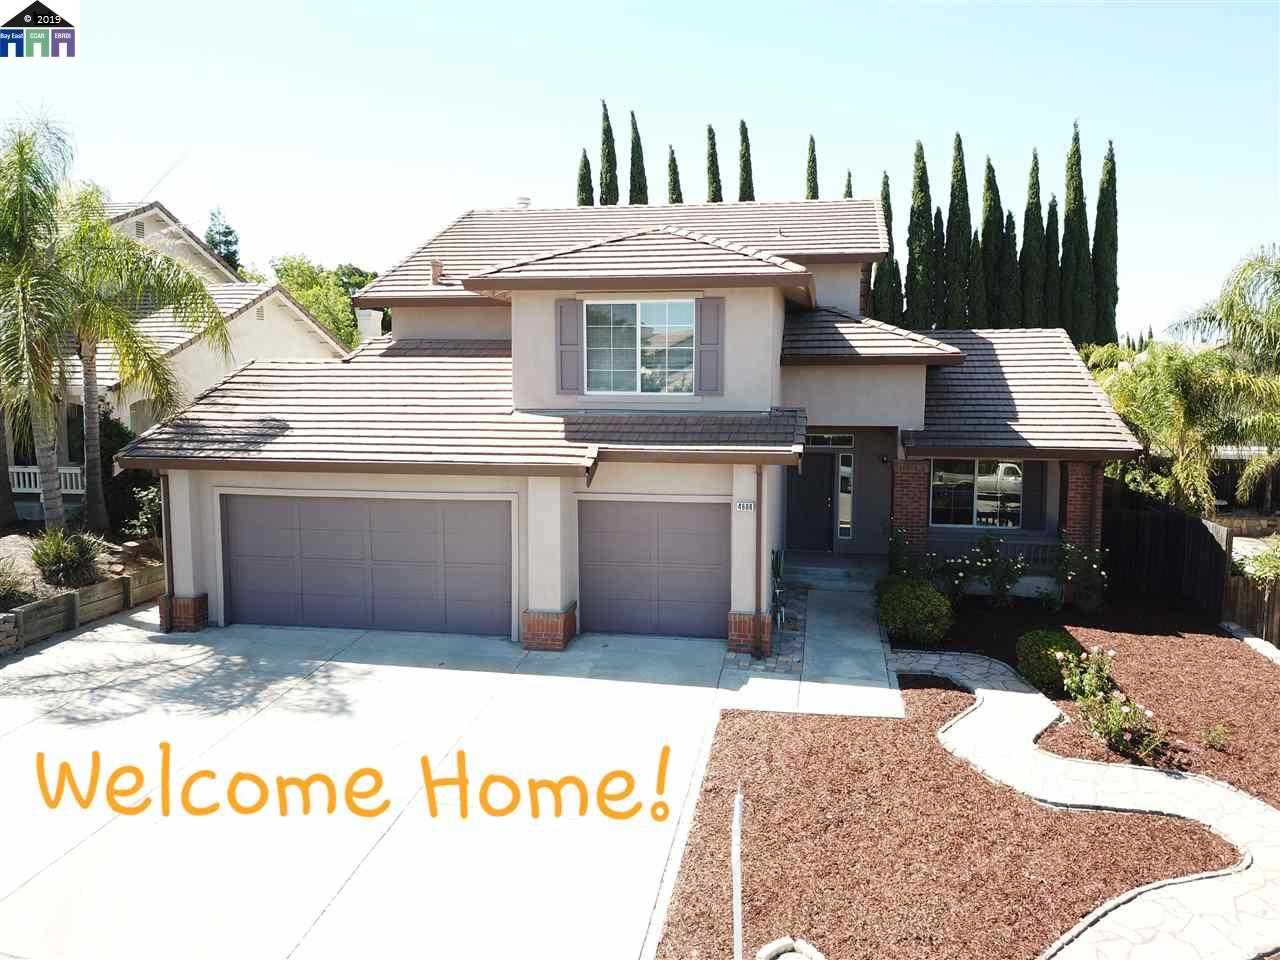 $549,900 - 5Br/3Ba -  for Sale in Country Hills, Antioch